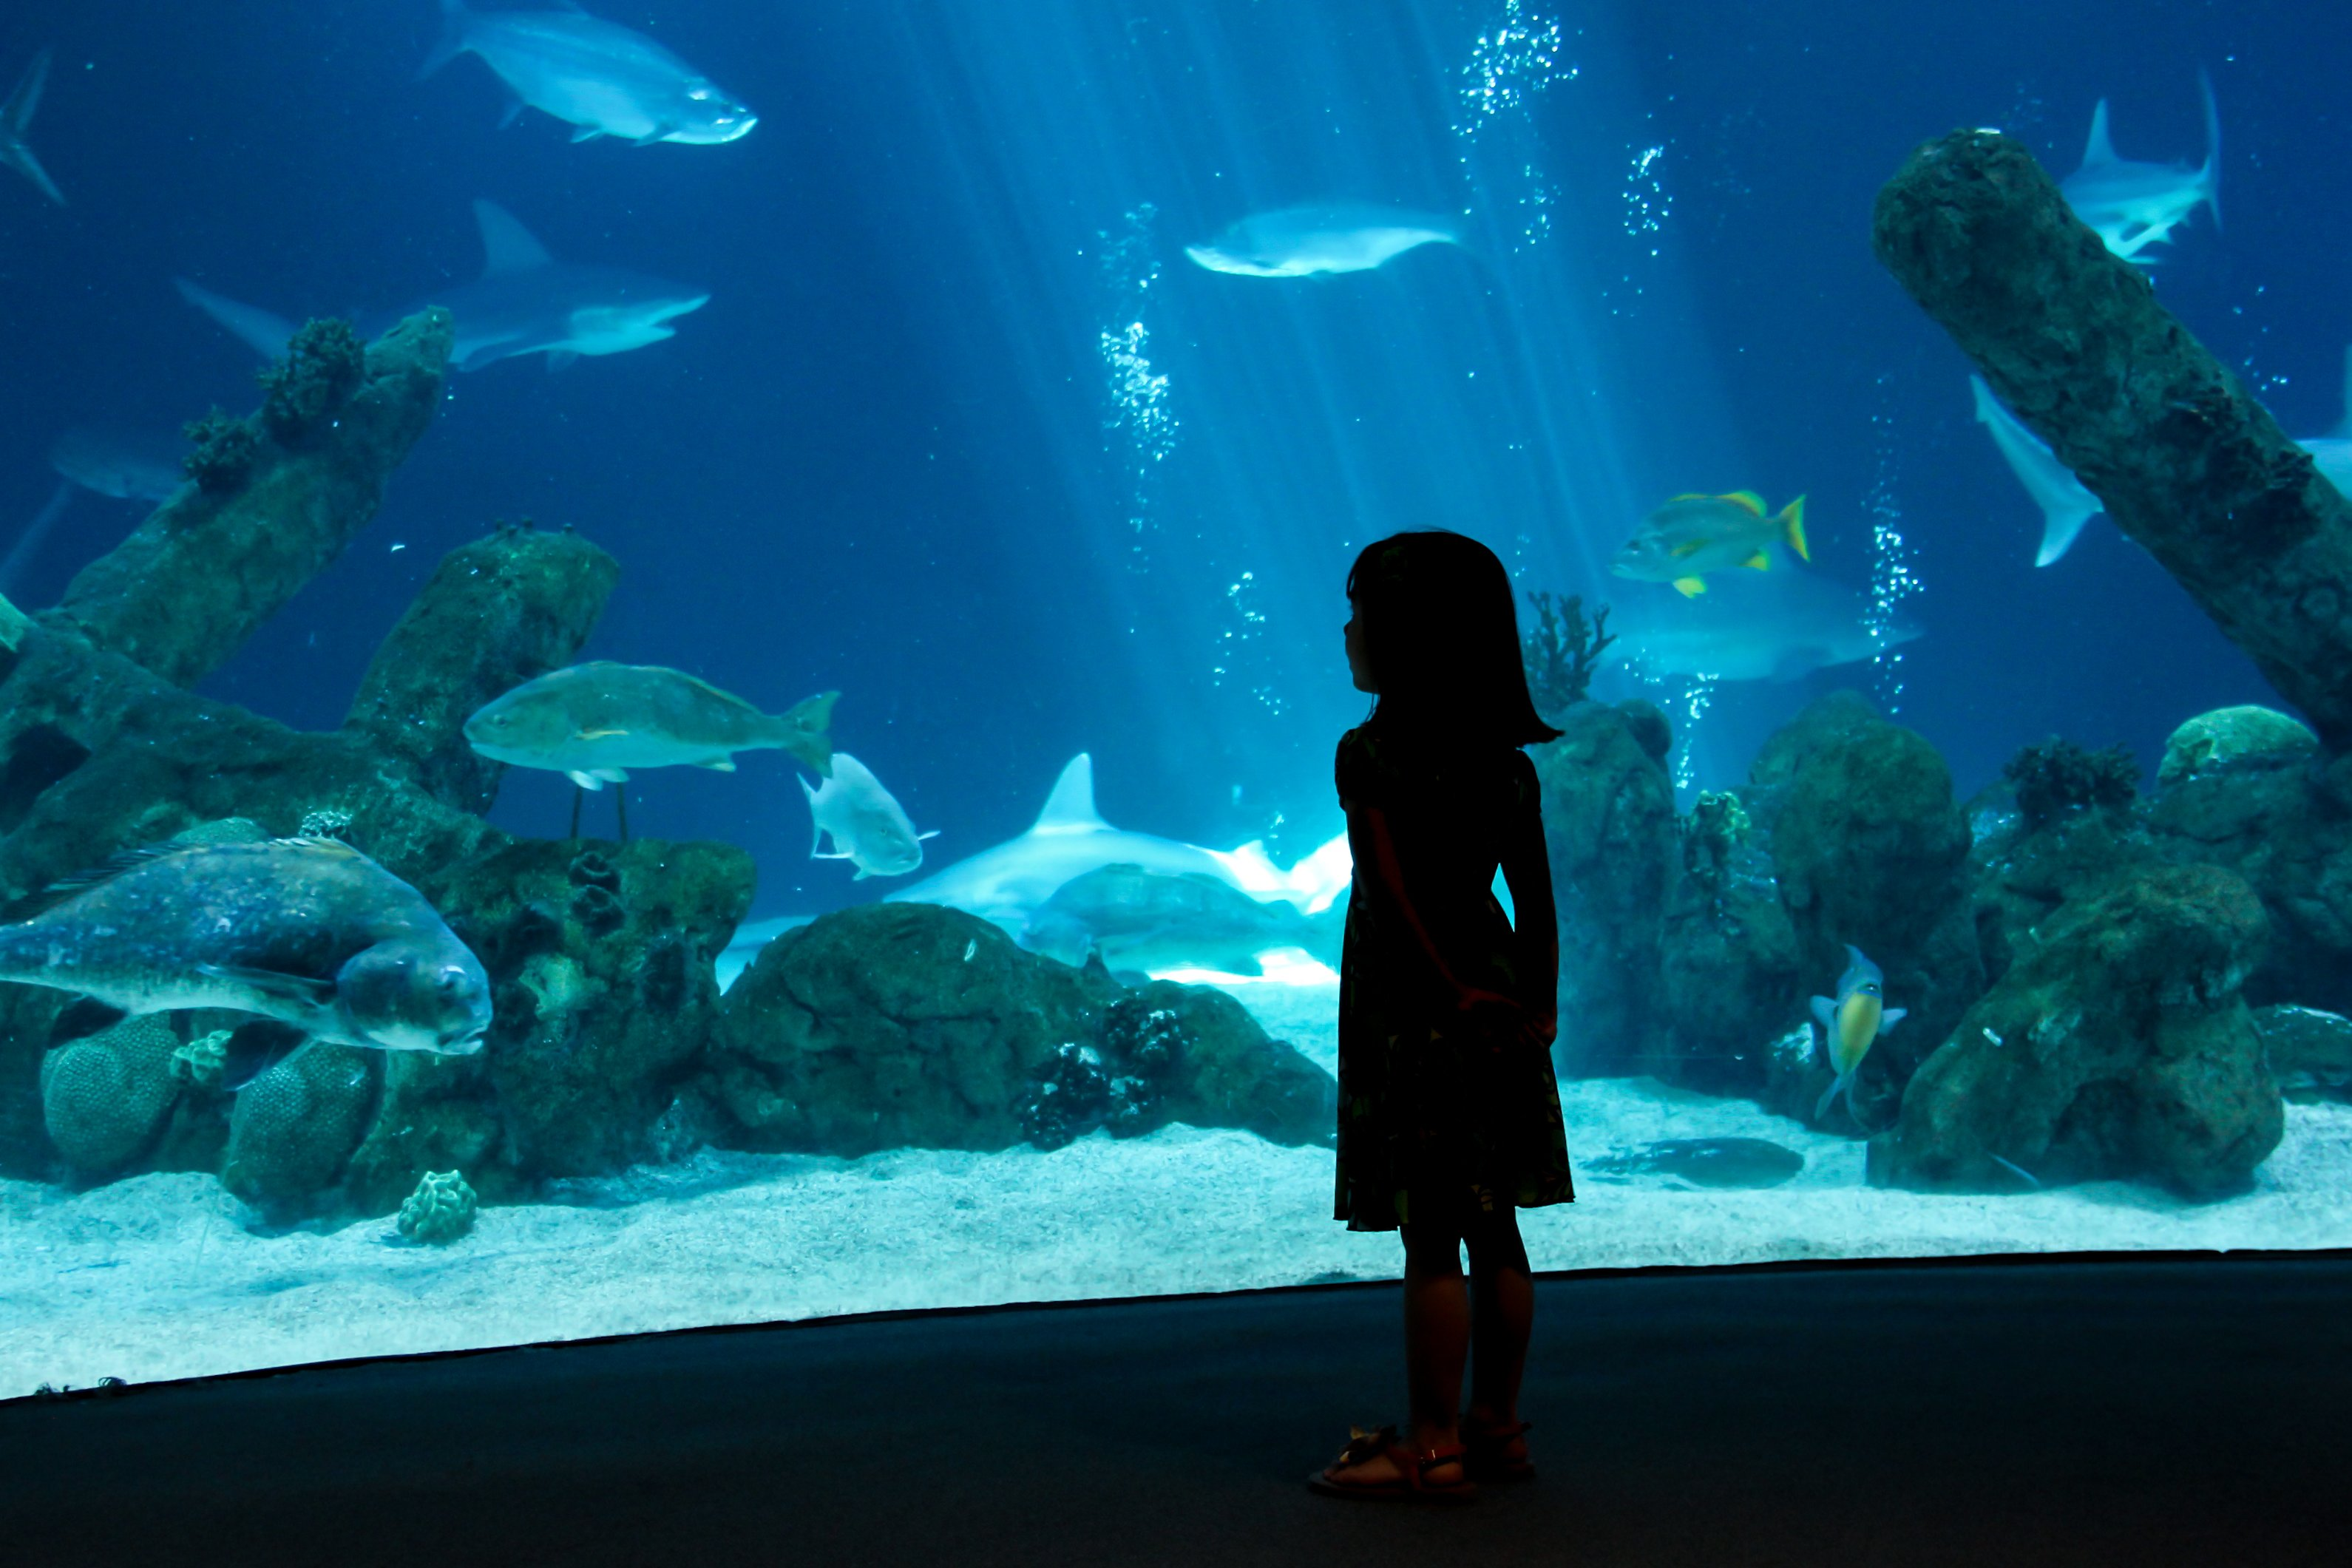 A 35,000-square-foot aquarium will be constructed inside of Great Lakes Crossing outlet mall by spring 2015. (Photo: CABQ.gov)